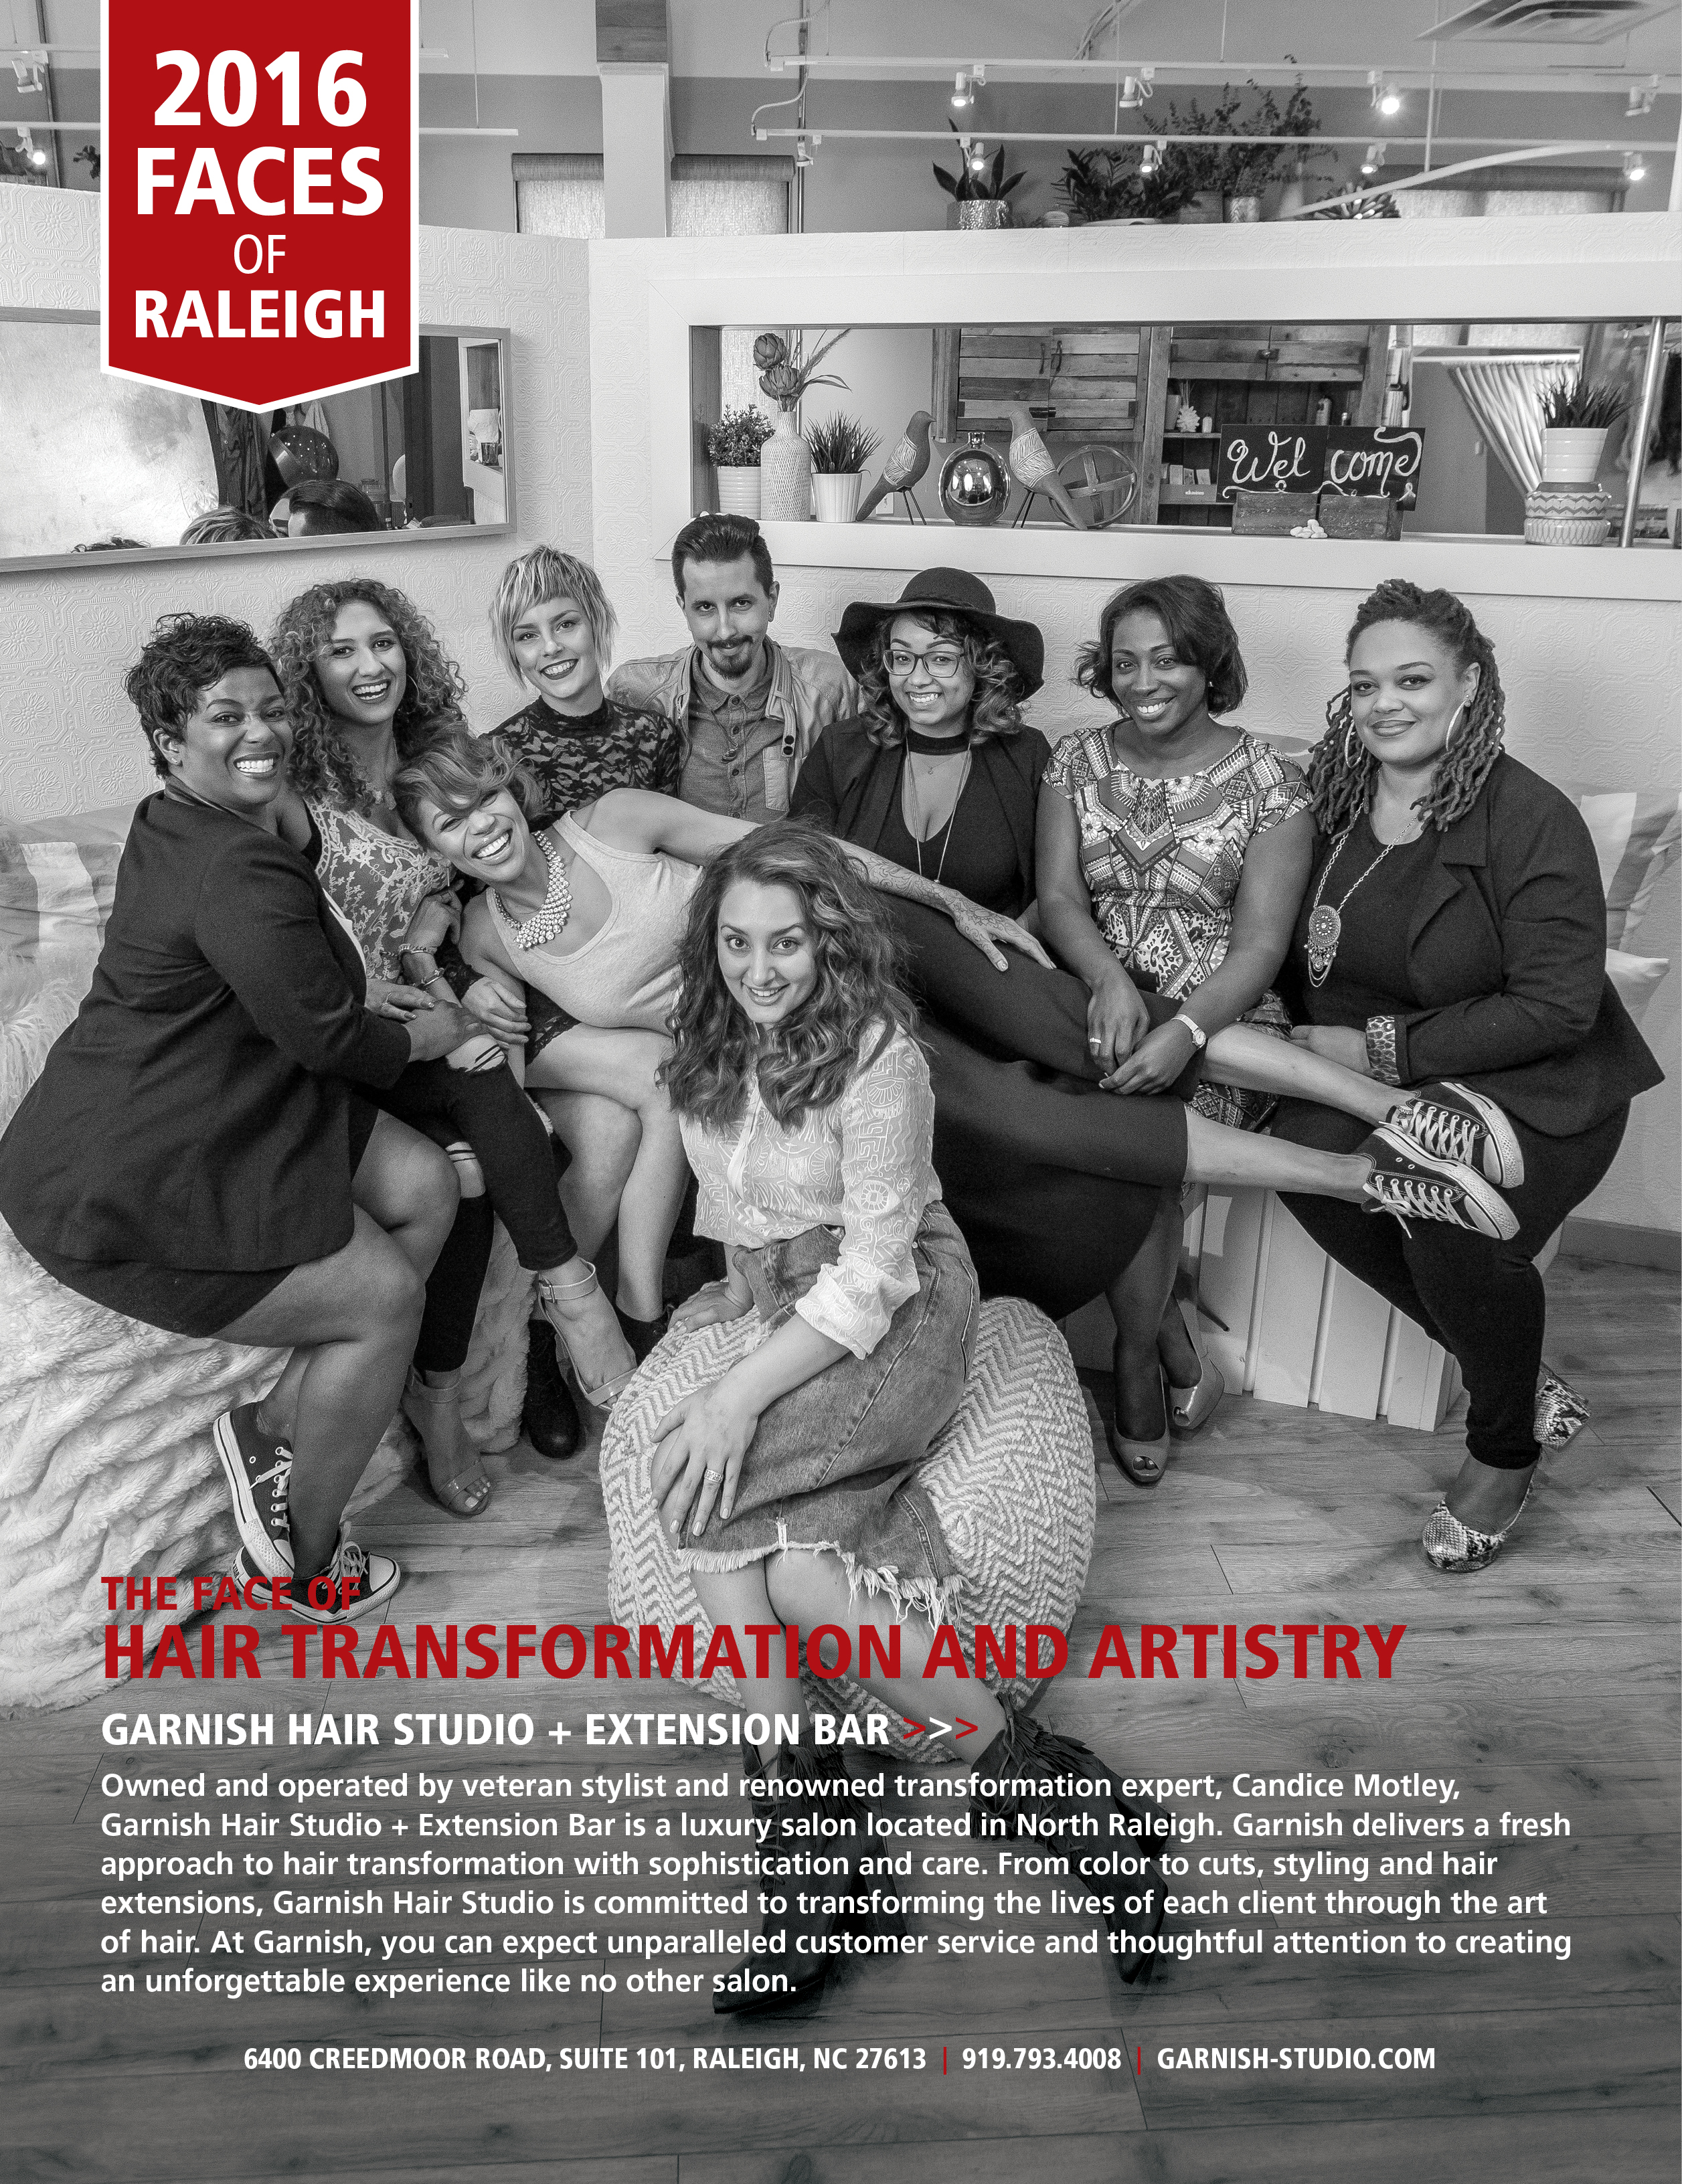 Midtown Magazine 2016 Faces of Raleigh